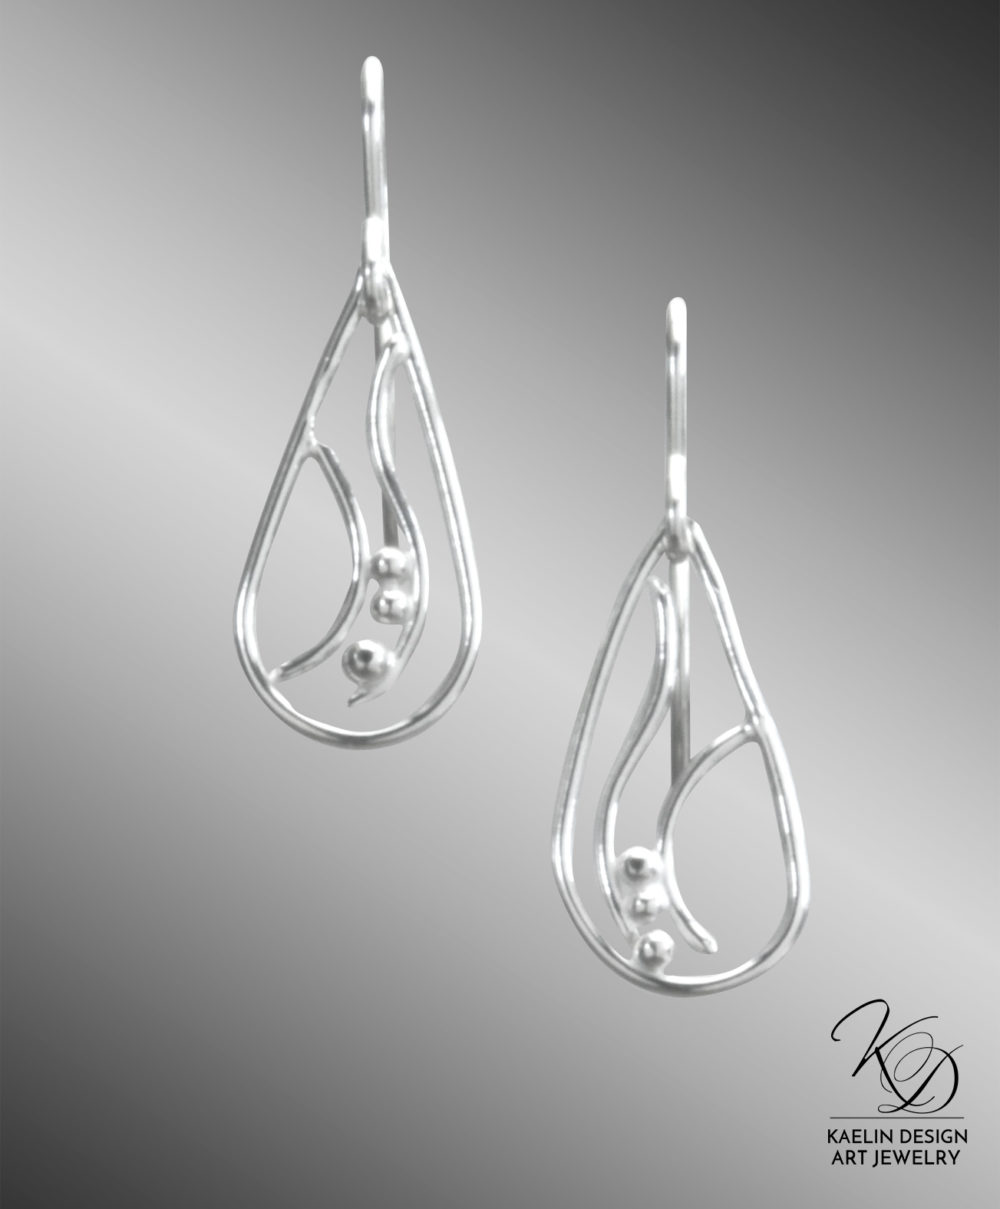 Maris Hand Forged Sterling Silver Earrings by Kaelin Design